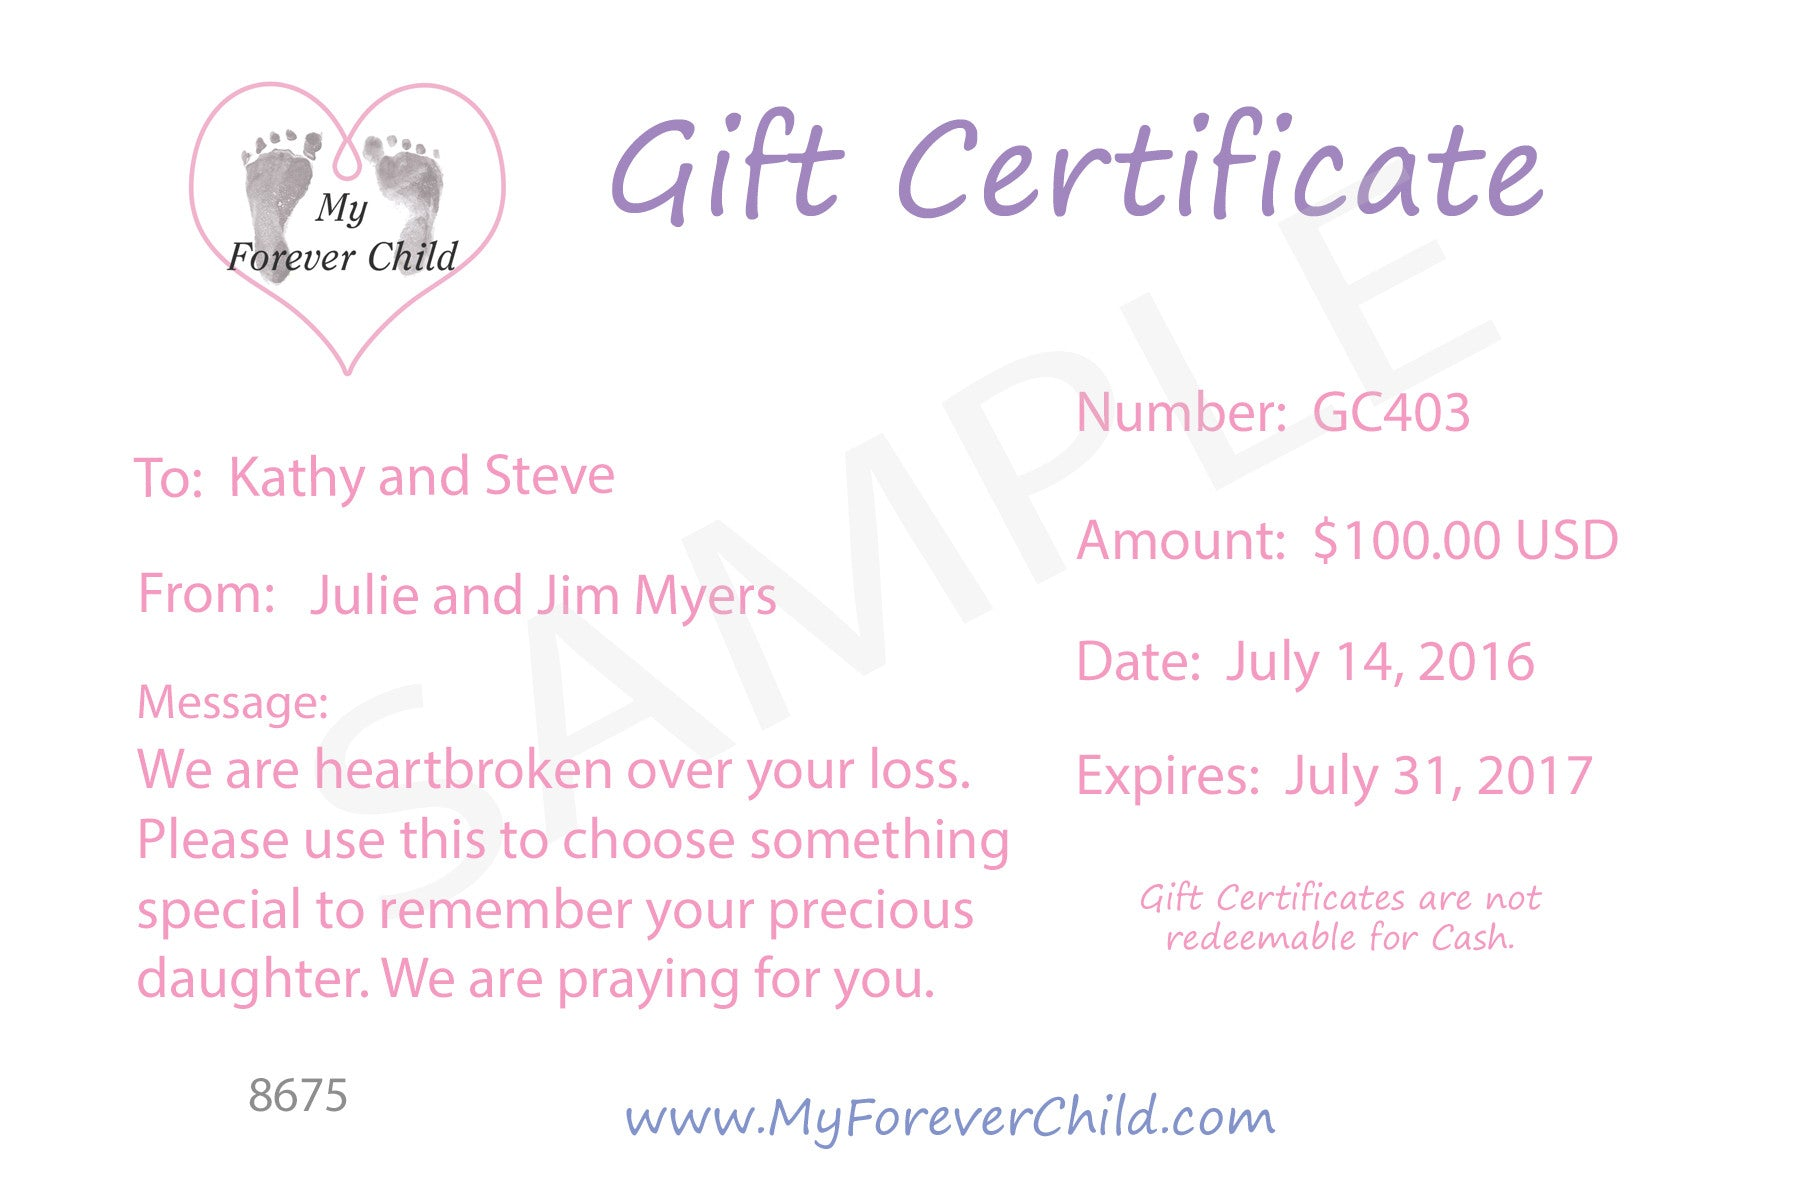 gift certificate my forever child gift certificates make the perfect solution for those that want to give a memorial gift but